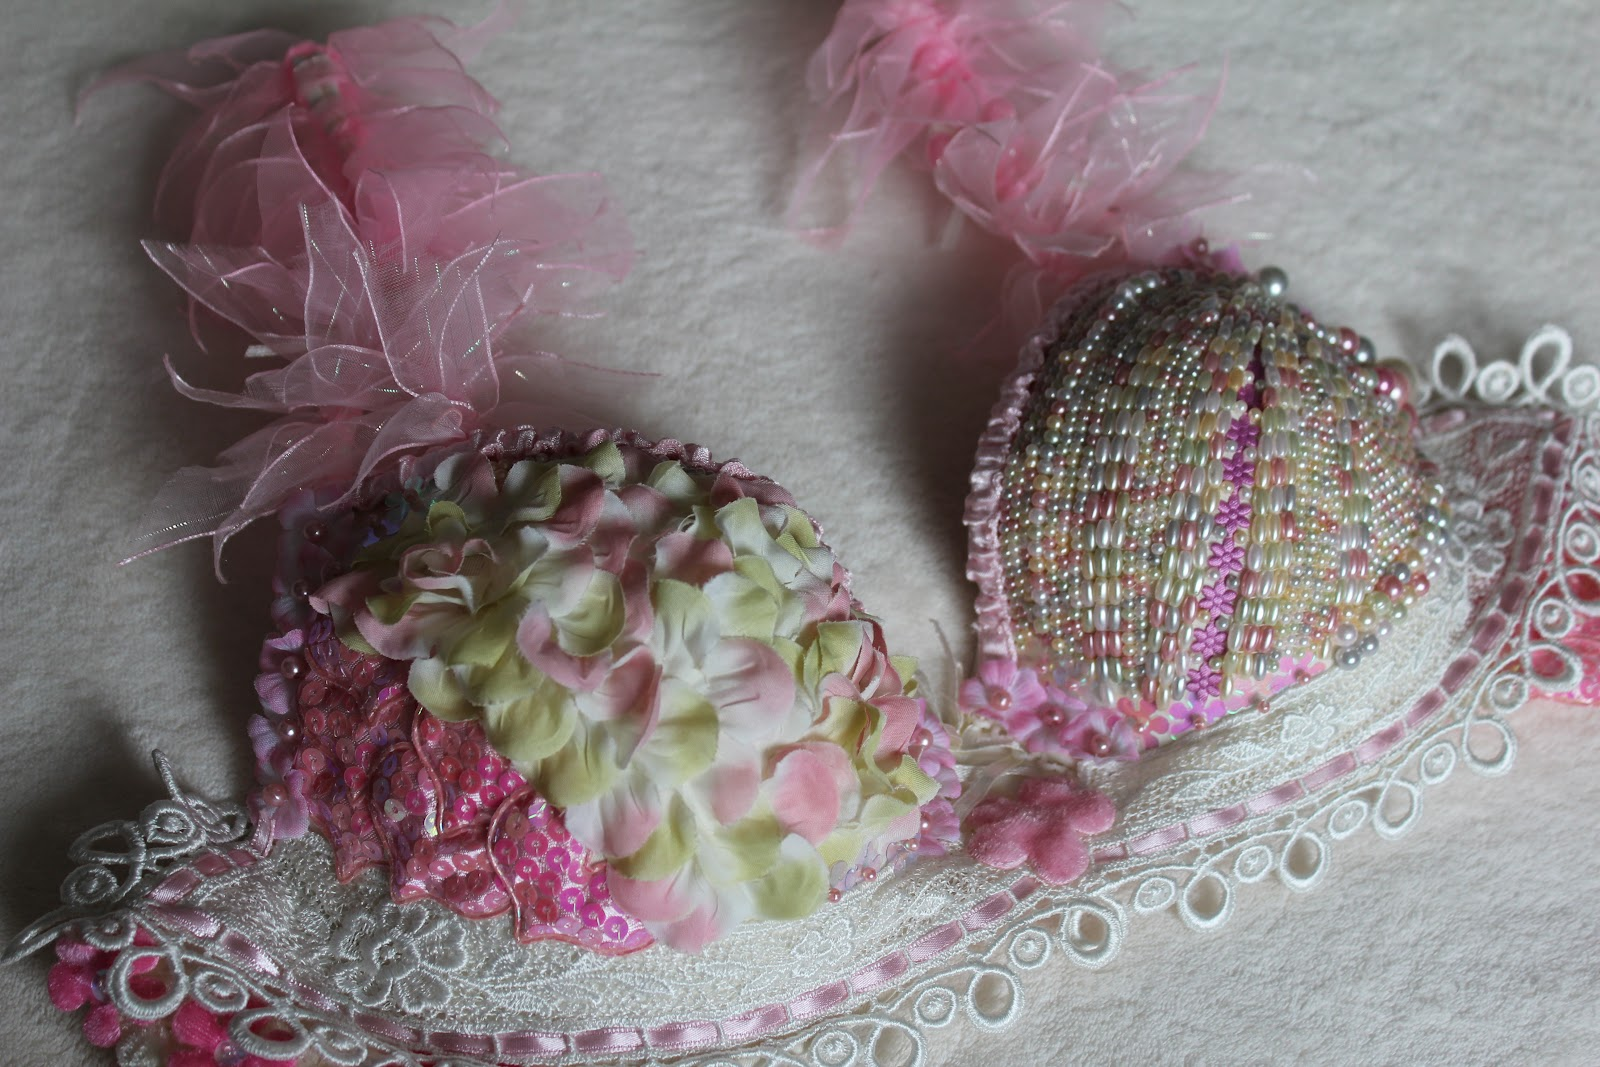 Decorated Bras http://northernlightscrafts.blogspot.com/2012/03/bra-i-decorated-for-bras-for-cause.html